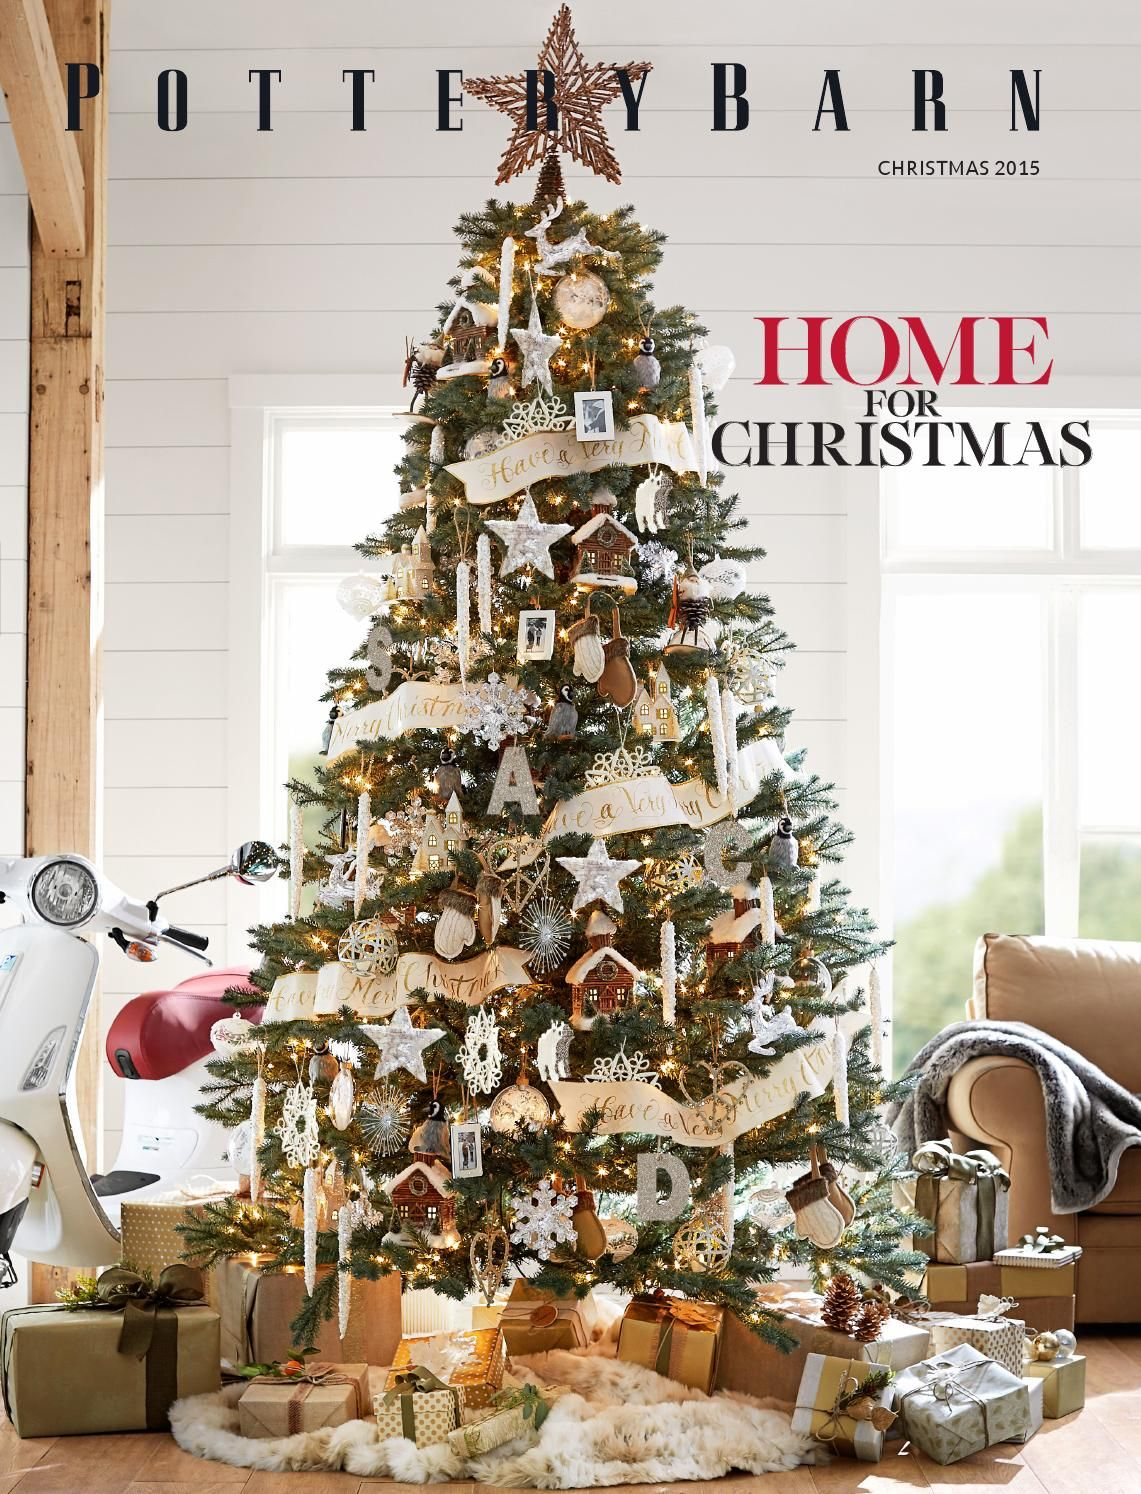 Pottery Barn Australia Christmas Catalogue 2015 Pottery Barn Christmas Tree Pottery Barn Christmas Decor Christmas Tree Decorations